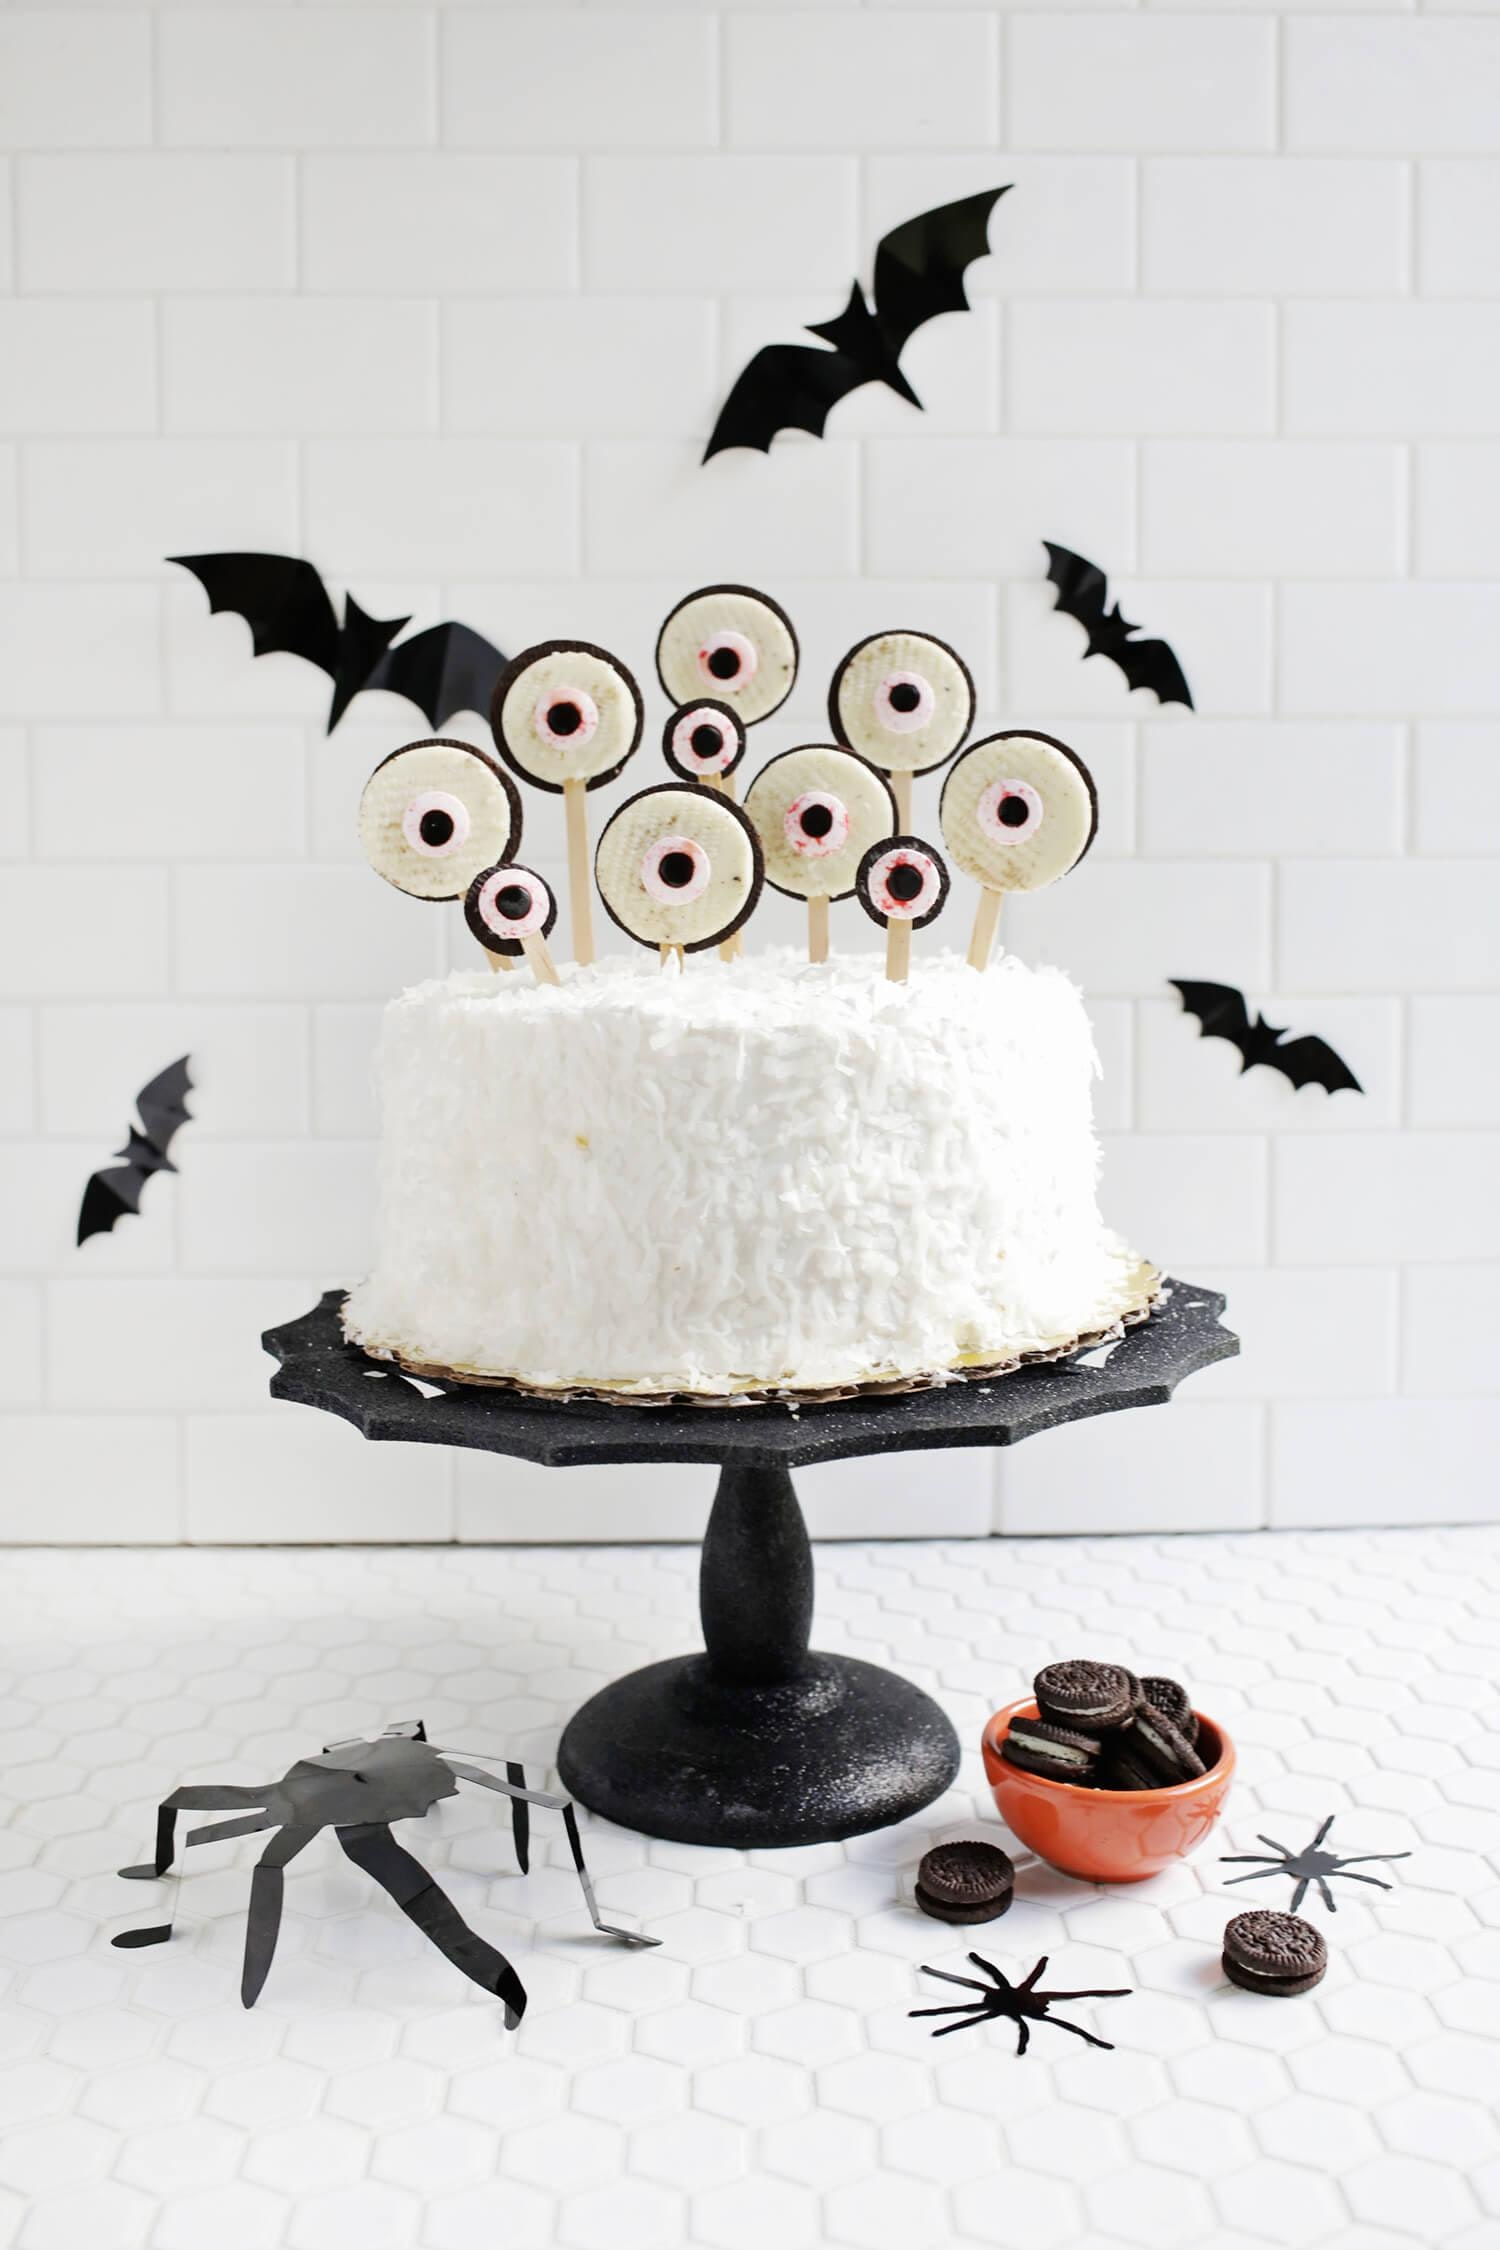 Spooky Eye Cake Toppers